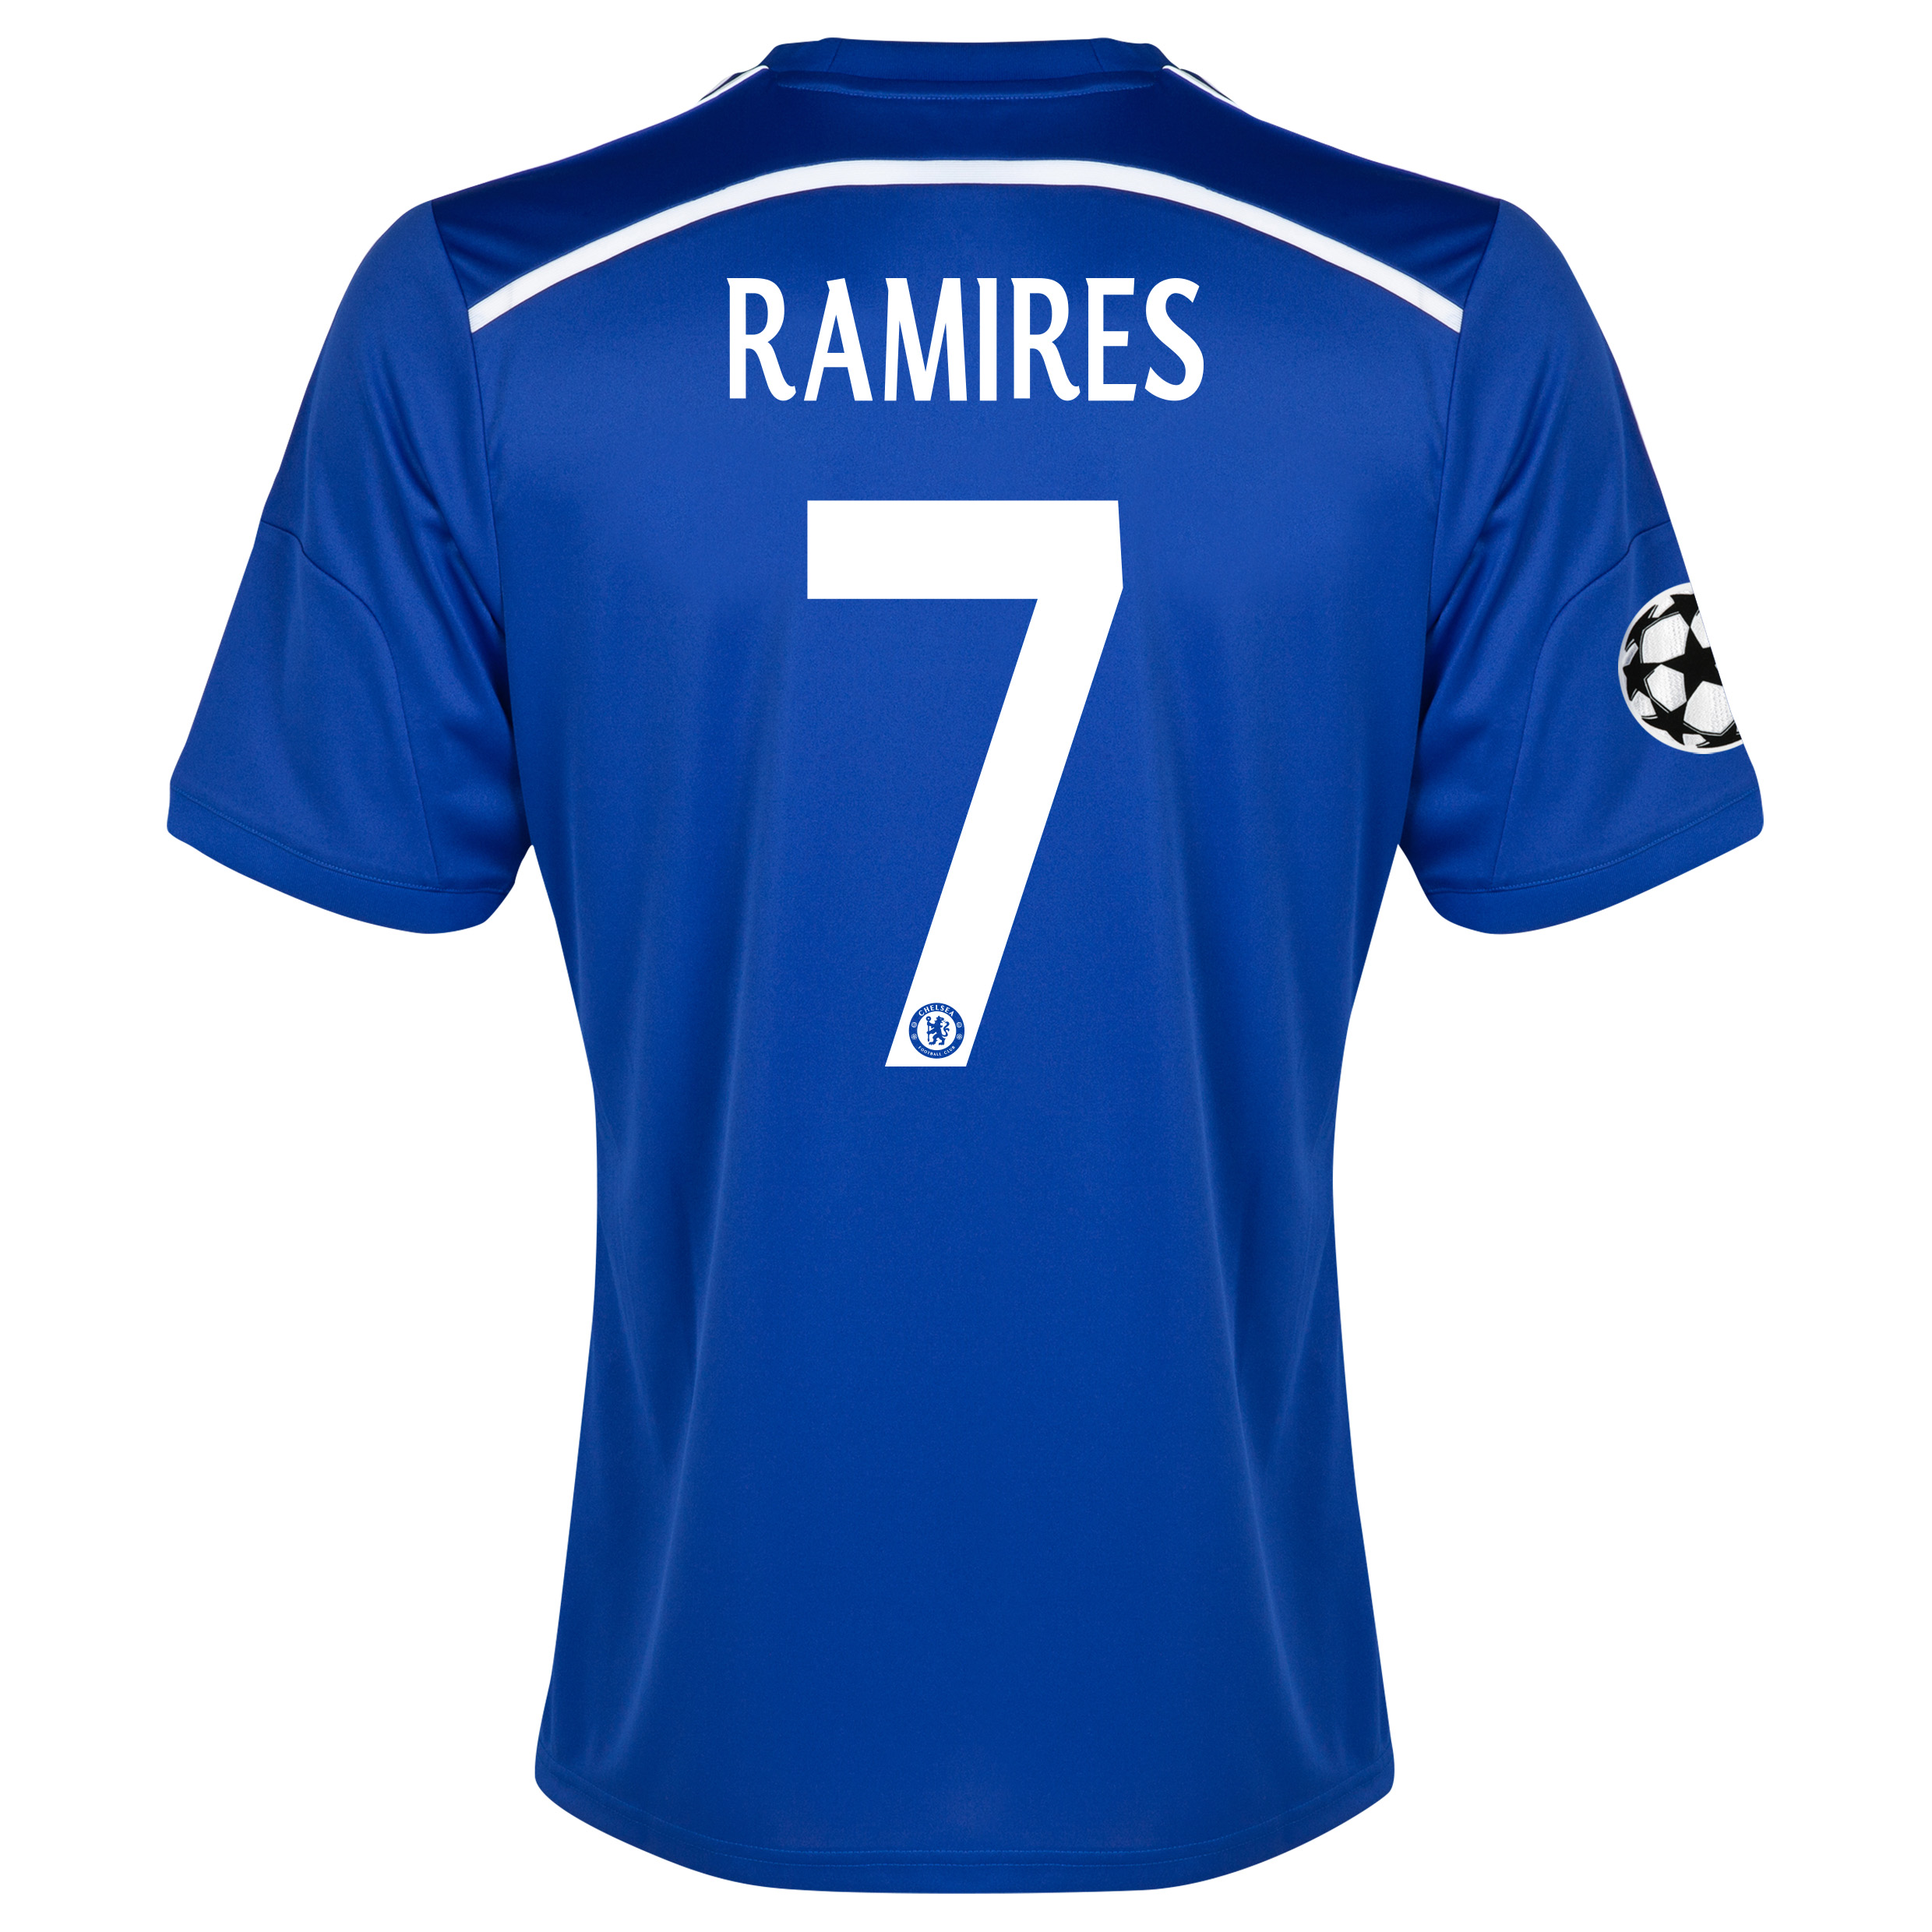 Chelsea UEFA Champions League Home Shirt 2014/15 - Kids Blue with Ramires 7 printing